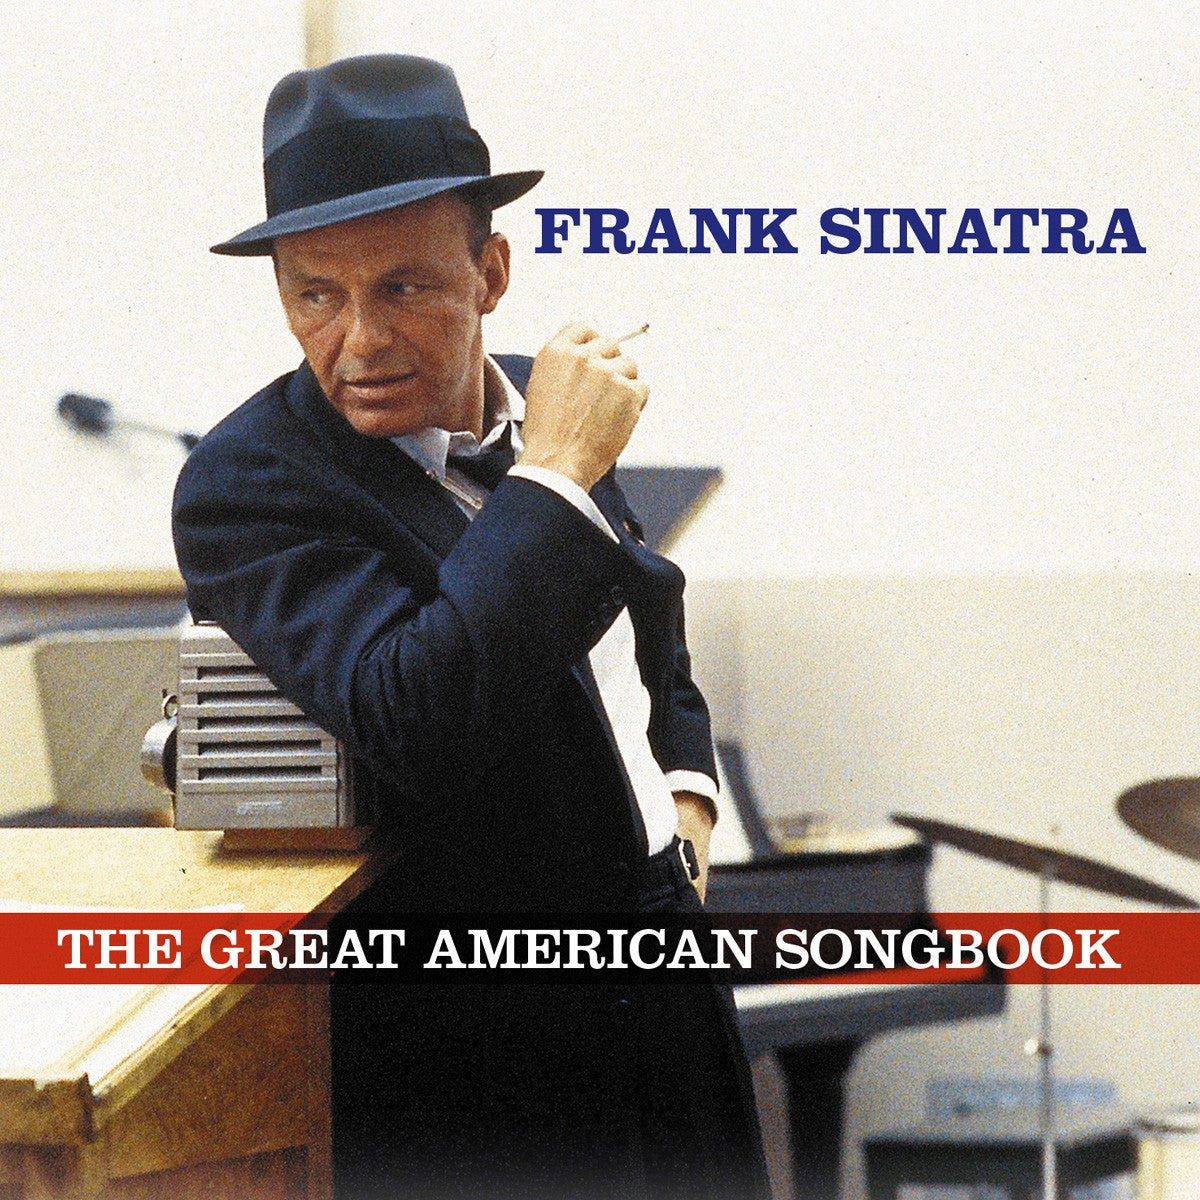 FRANK SINATRA: The Great American Songbook (2 CDS)